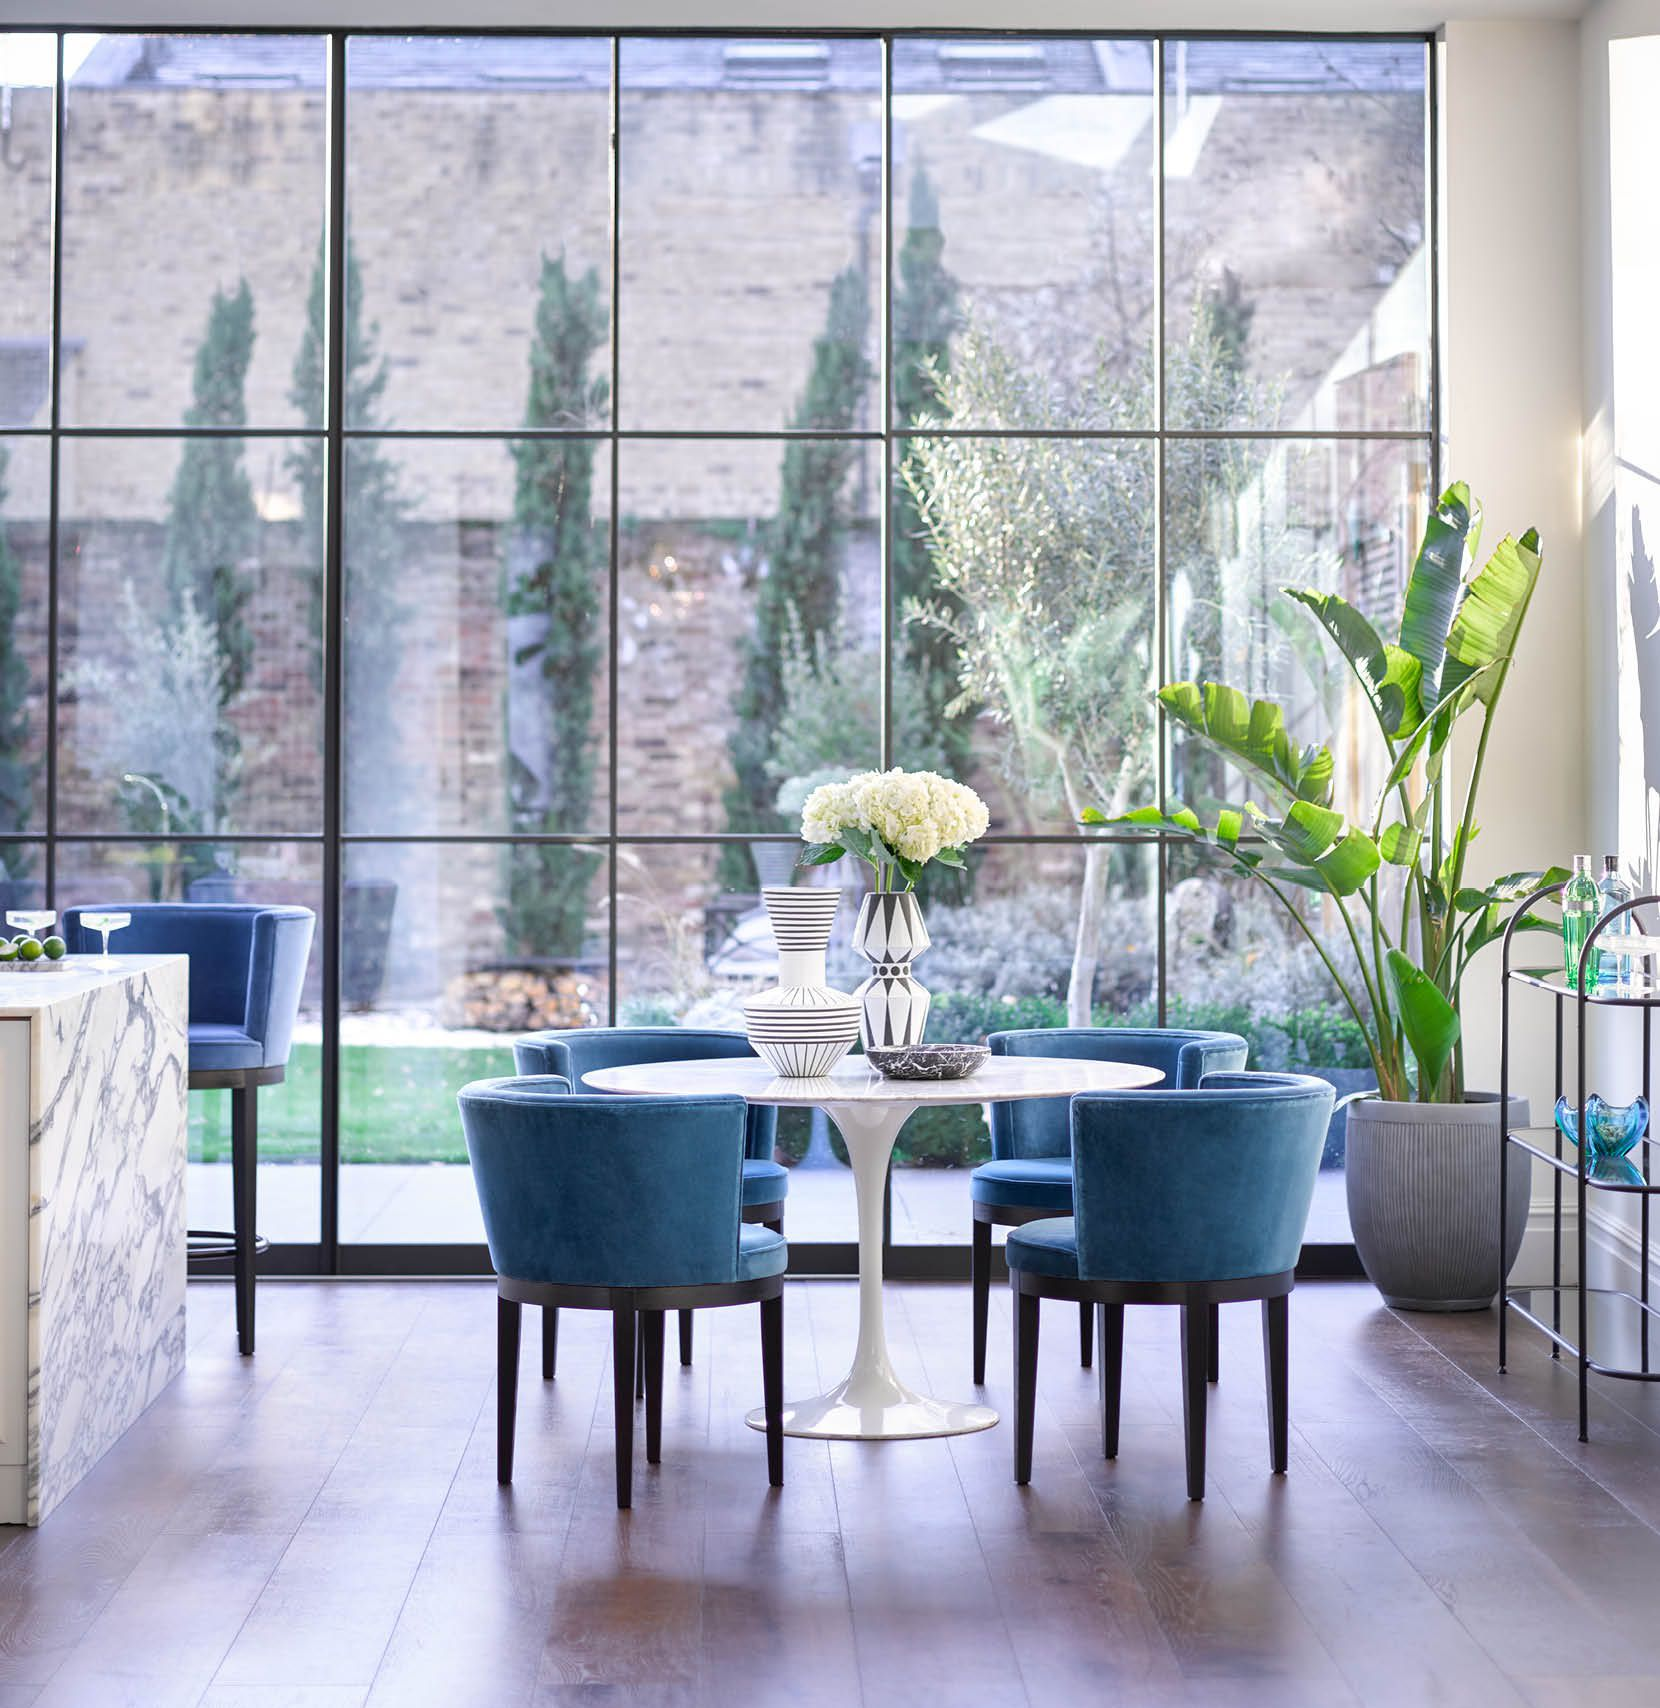 Dining room table and Margaux dining chairs in open-plan kitchen